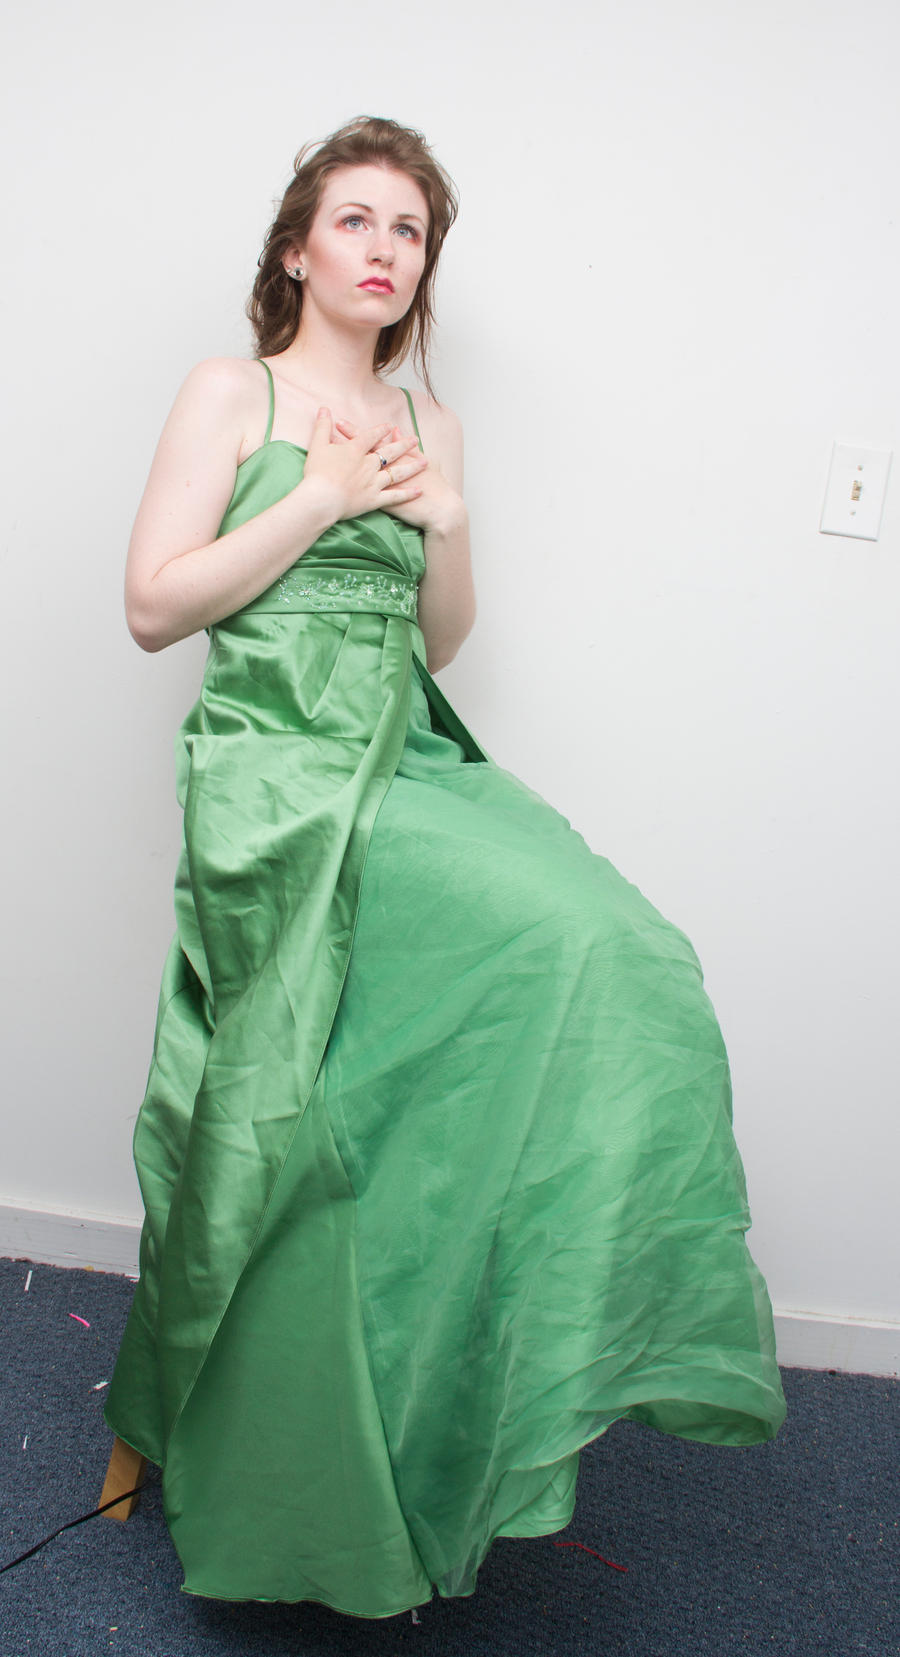 Green gown sitting 2 by Sinned-angel-stock